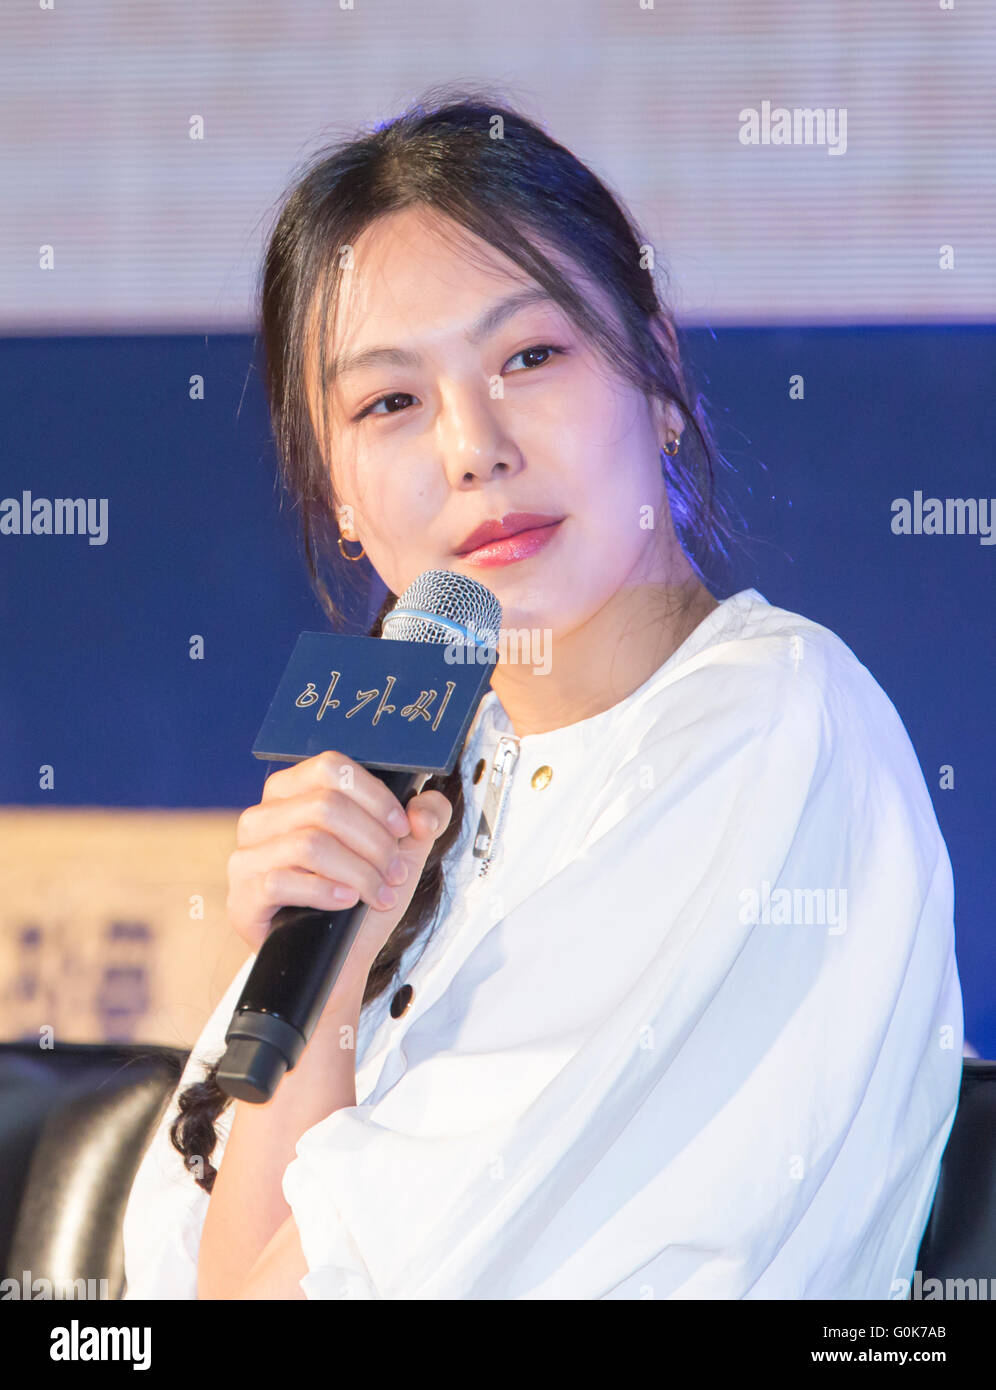 Kim Min-hee, May 2, 2016 : South Korean actress Kim Min-hee attends a press conference for her film, 'The Handmaiden' - Stock Image